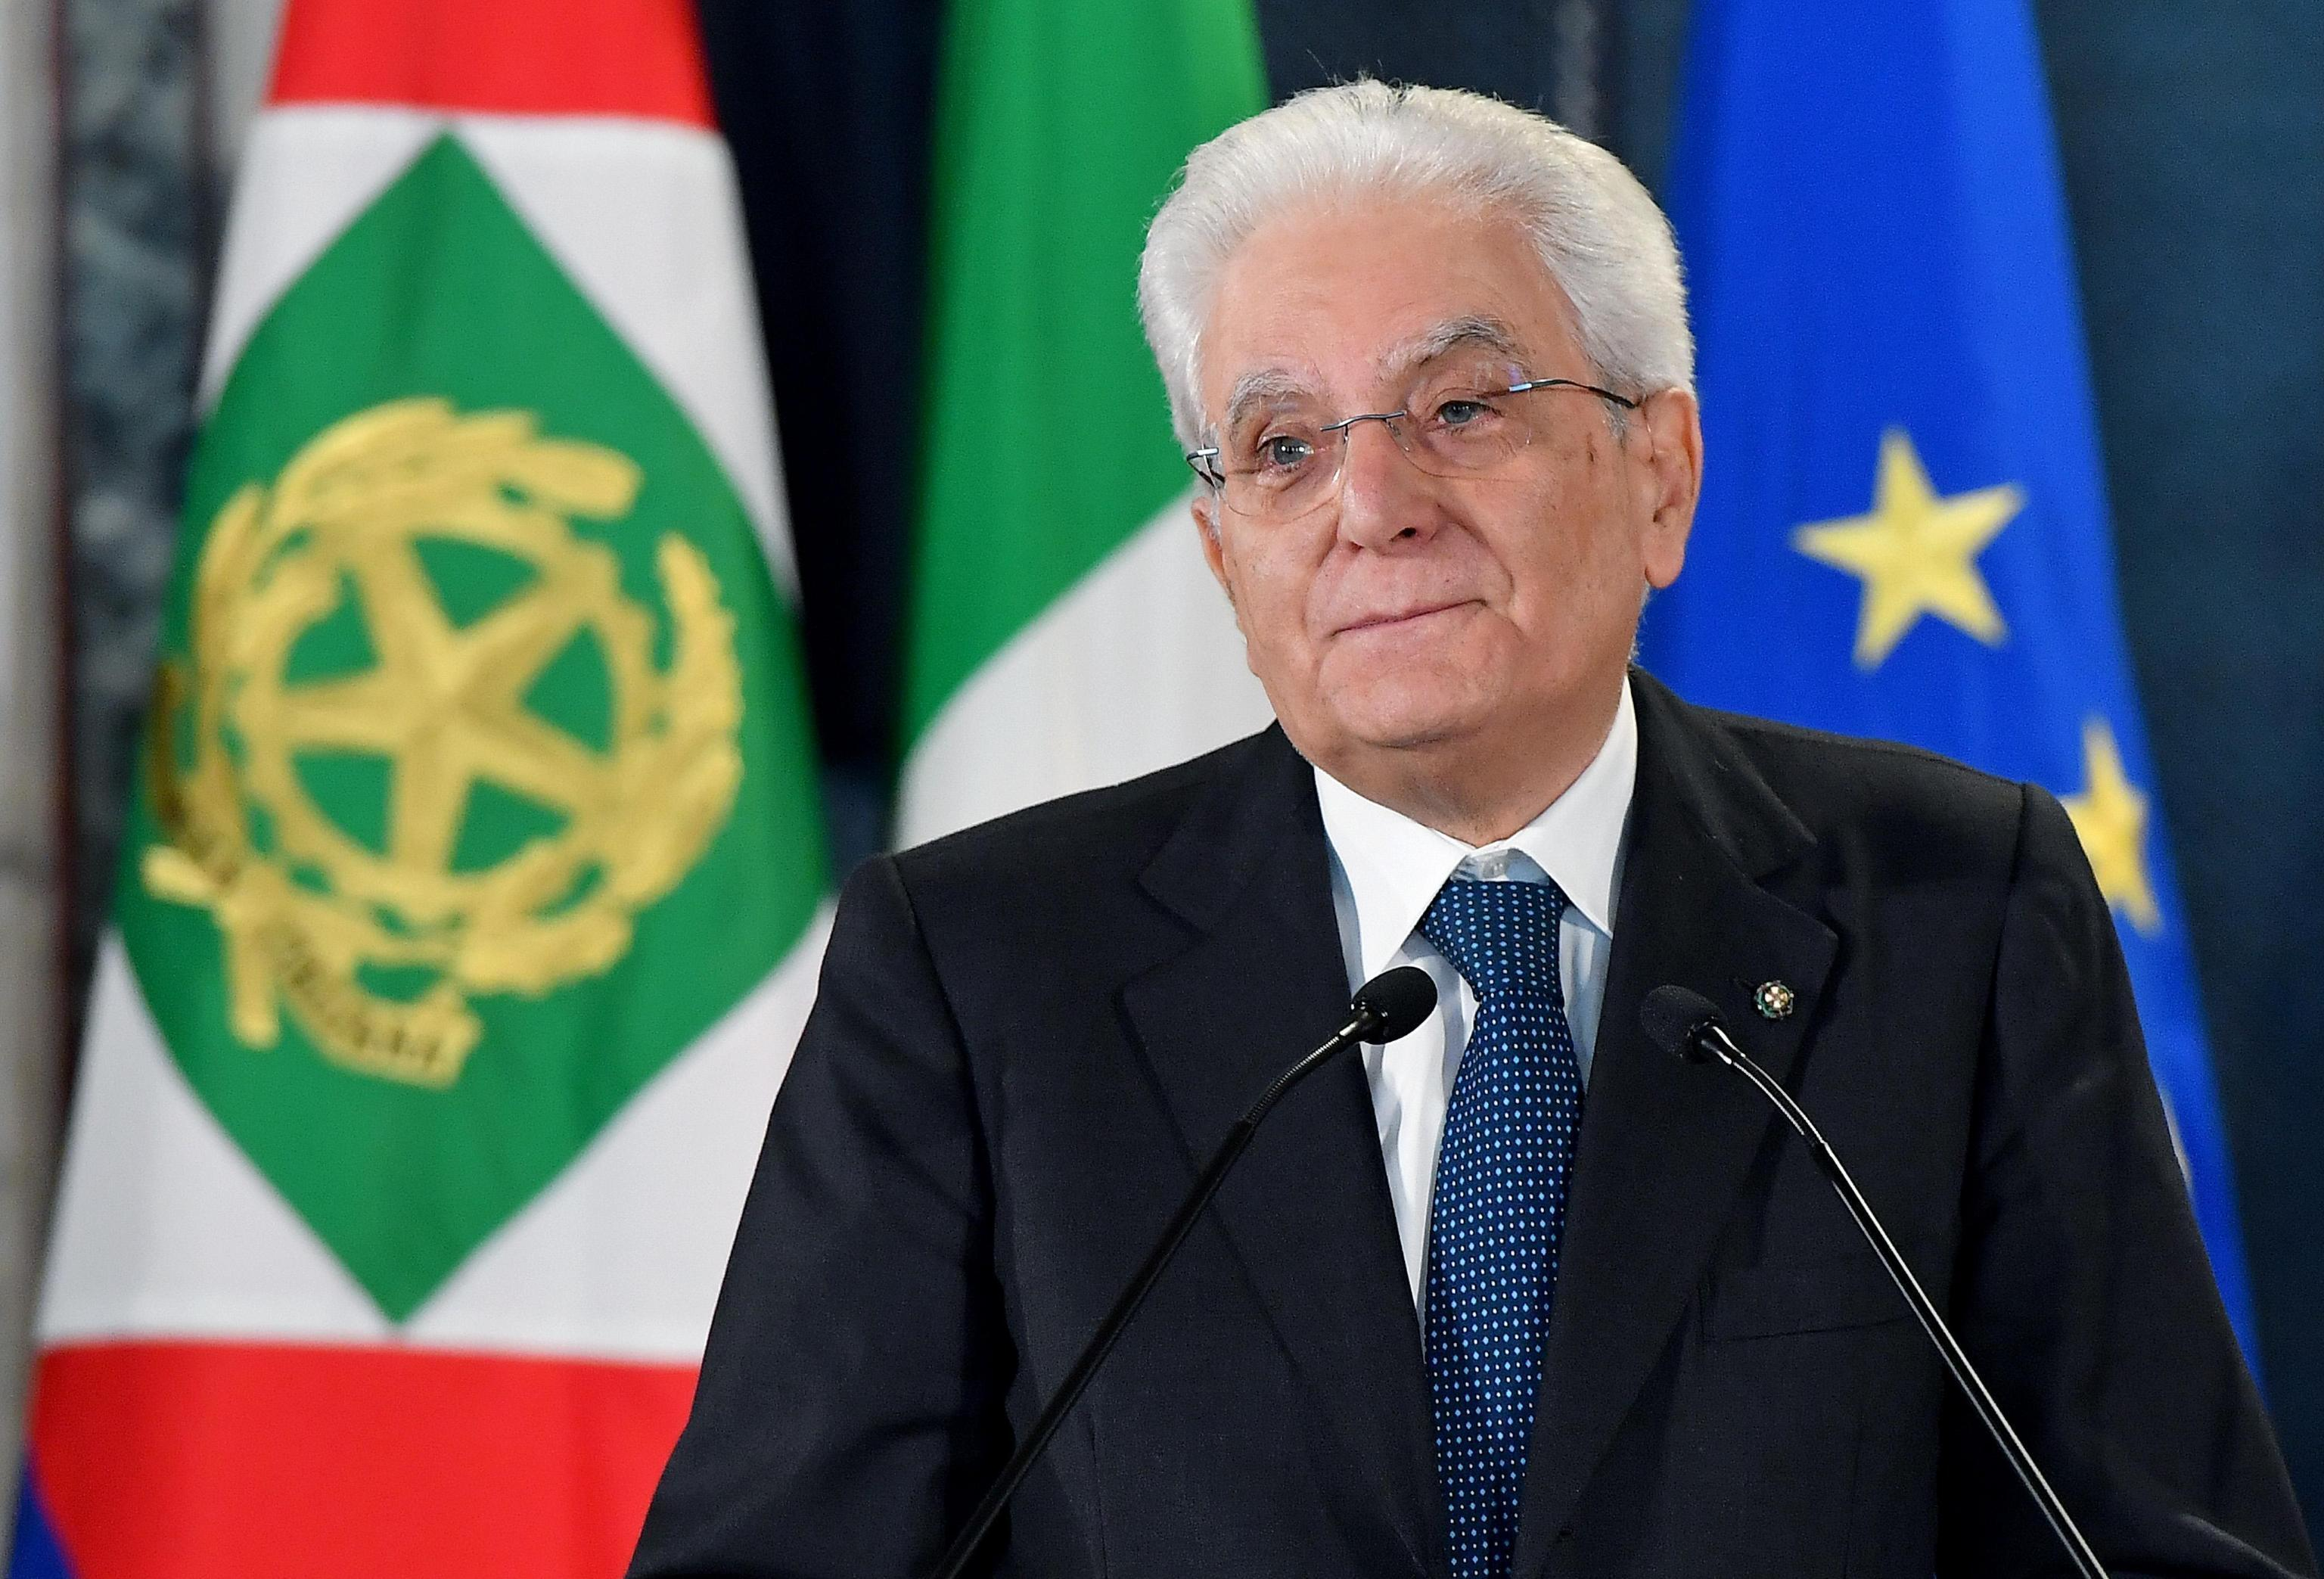 Italy's populists seek deal that will lead to clash with EU